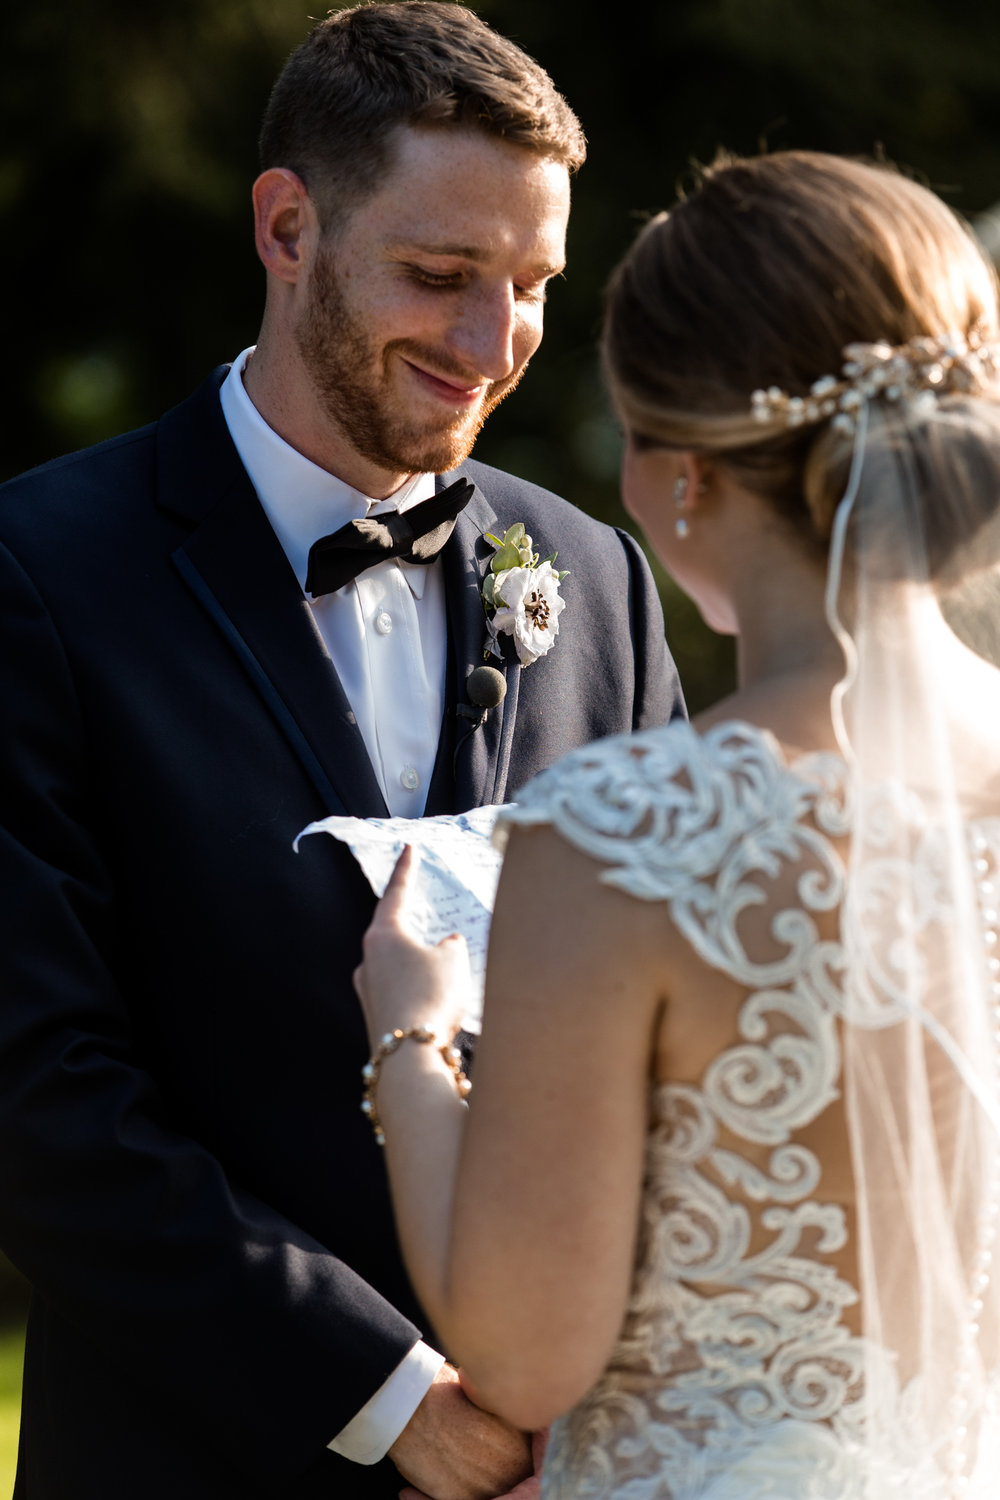 Wedding couple exchanging vows, Baltimore Wedding Photography